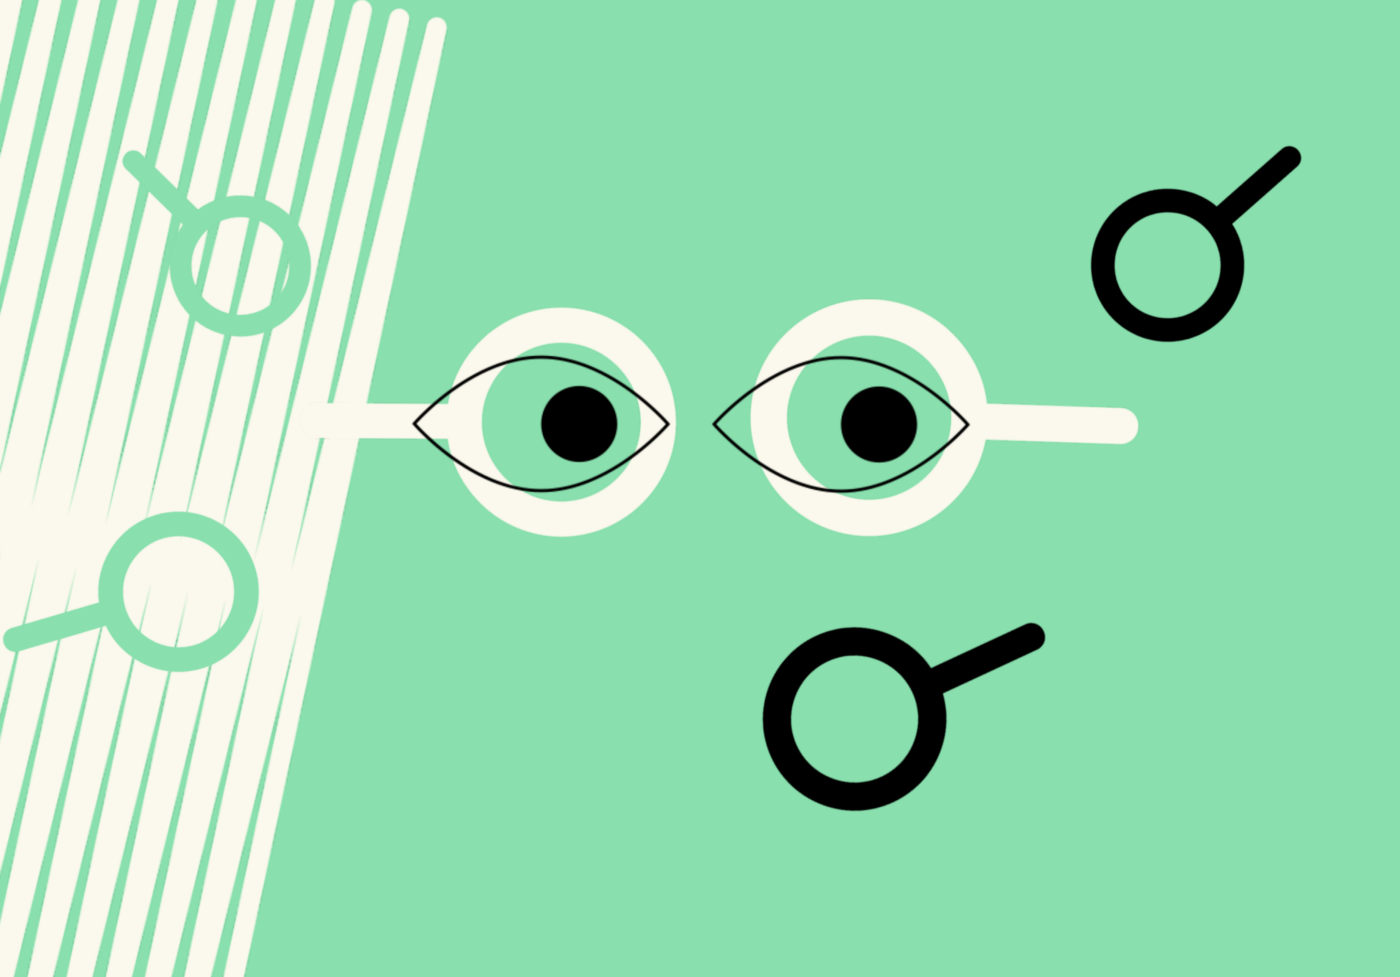 Illustration of a pair of eyes and magnifyng galsses